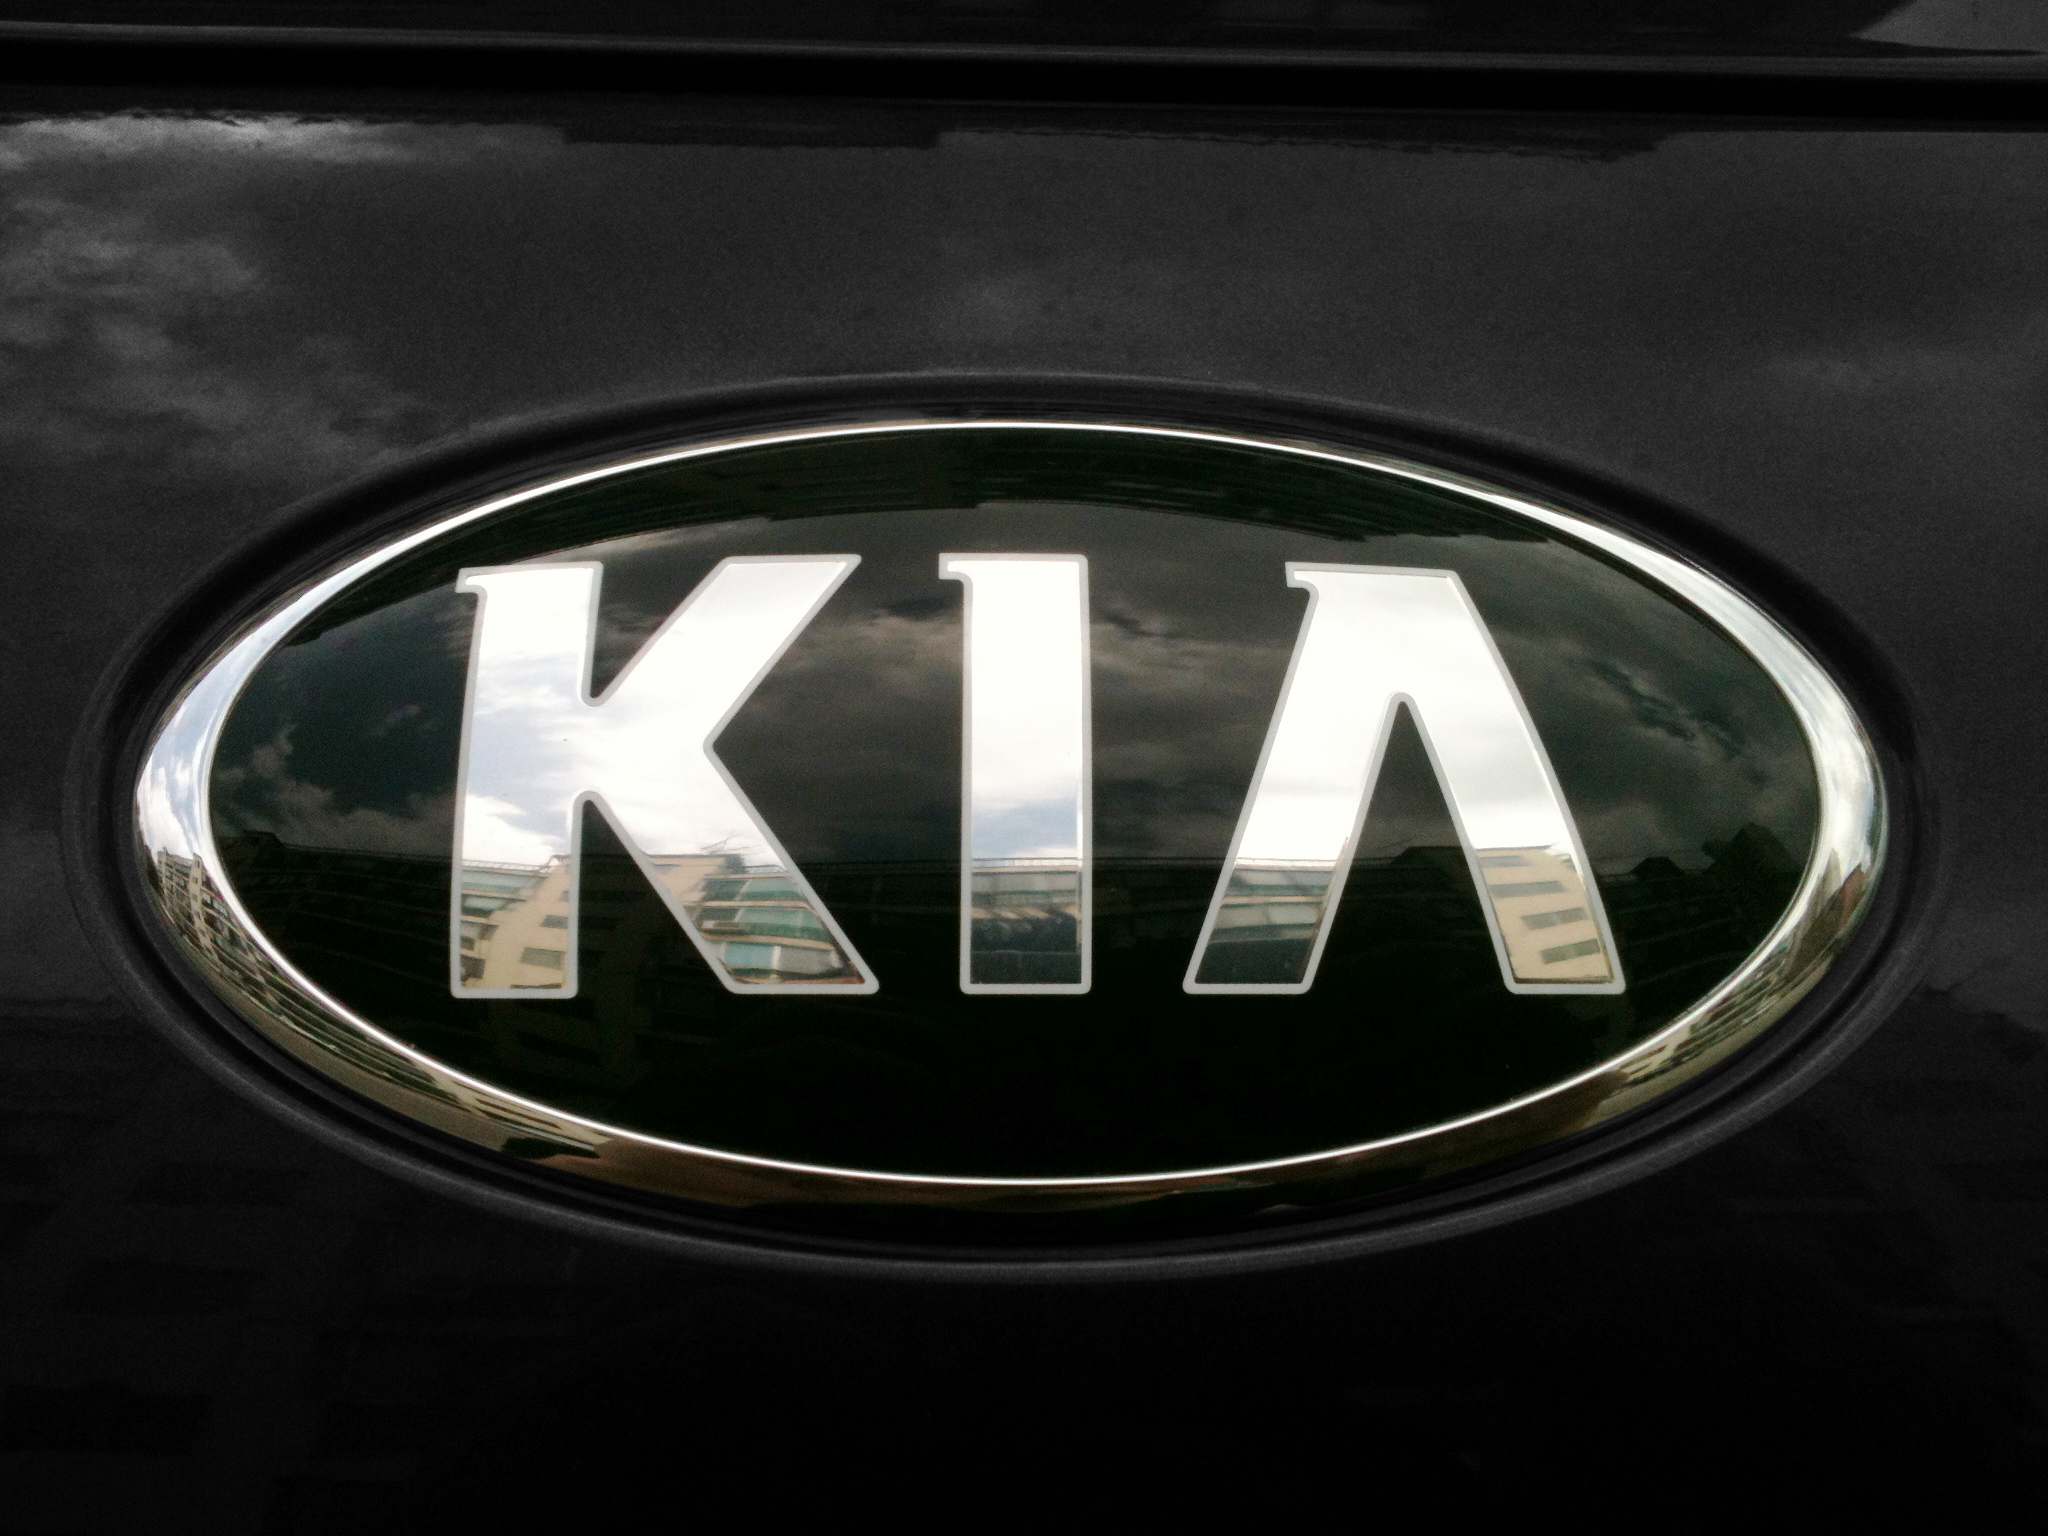 kia the company Submit your complaint or review on kia motors corporation  caution everyone arrogant and unresponsive company 7 omeglecom and freechatnowcom (28).